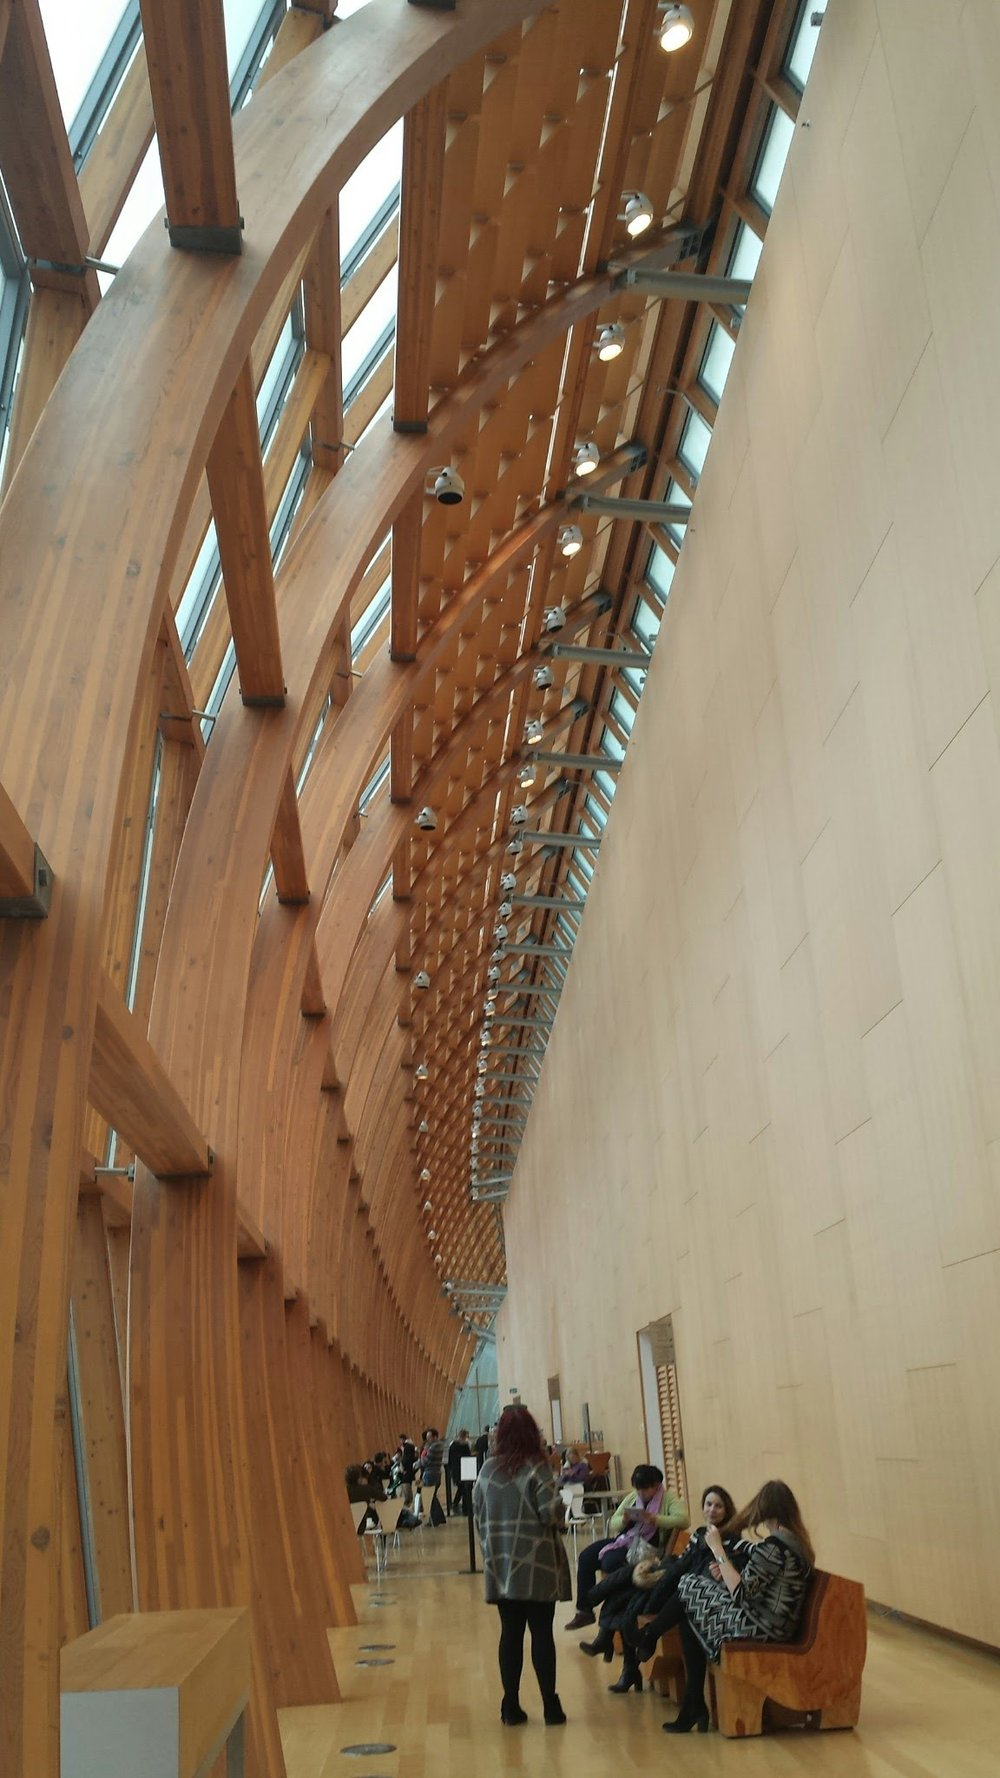 Ontario Art Gallery, photo by Weihang Wang on her trip to AAS